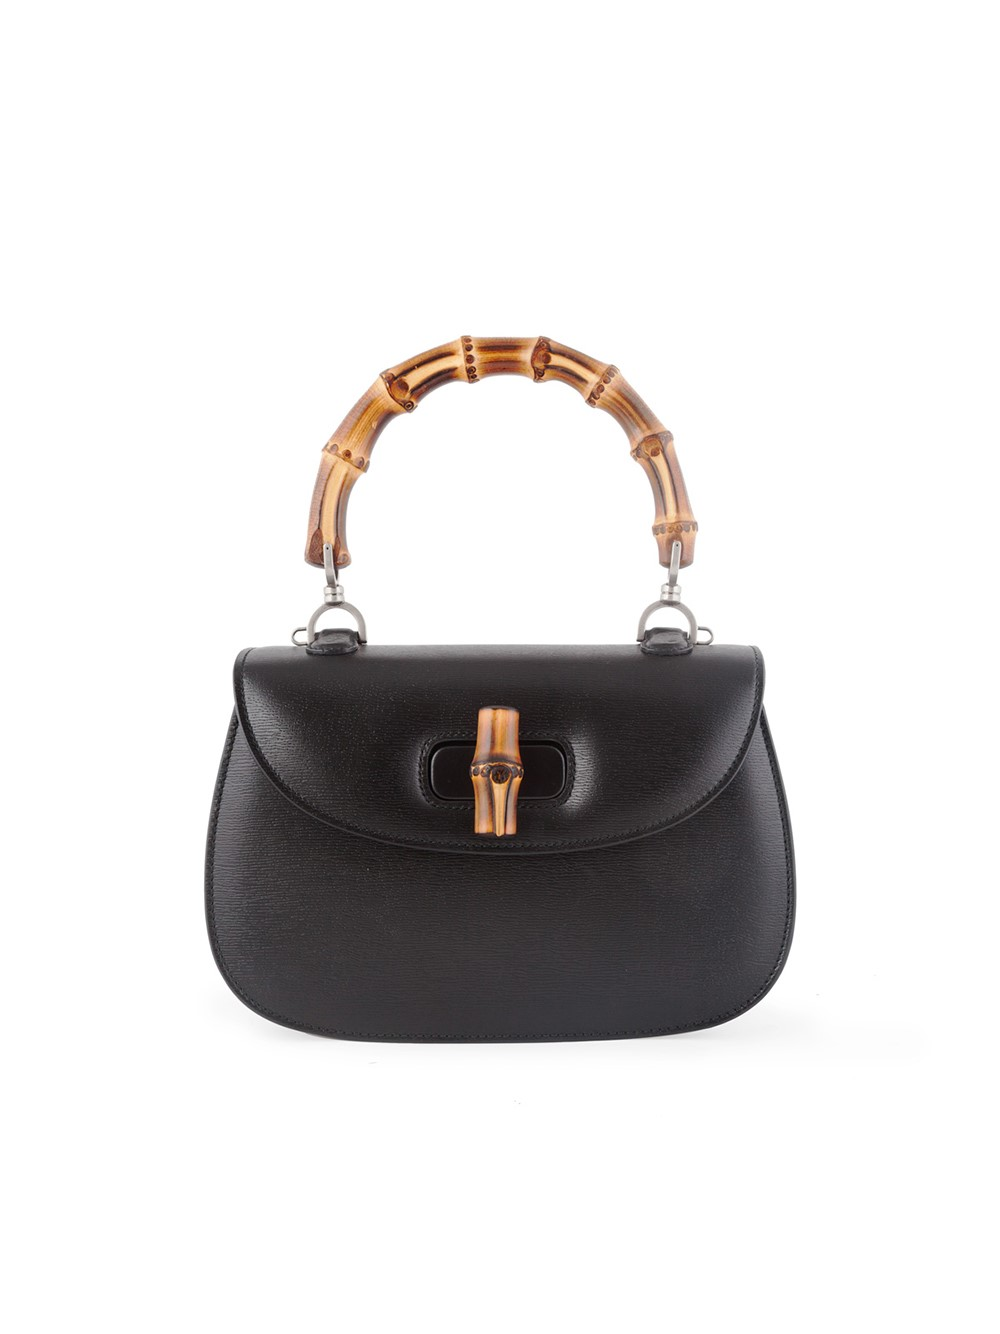 90081ae7c7 gucci BAMBOO HANDLE BAG WITH STRAP available on montiboutique.com ...